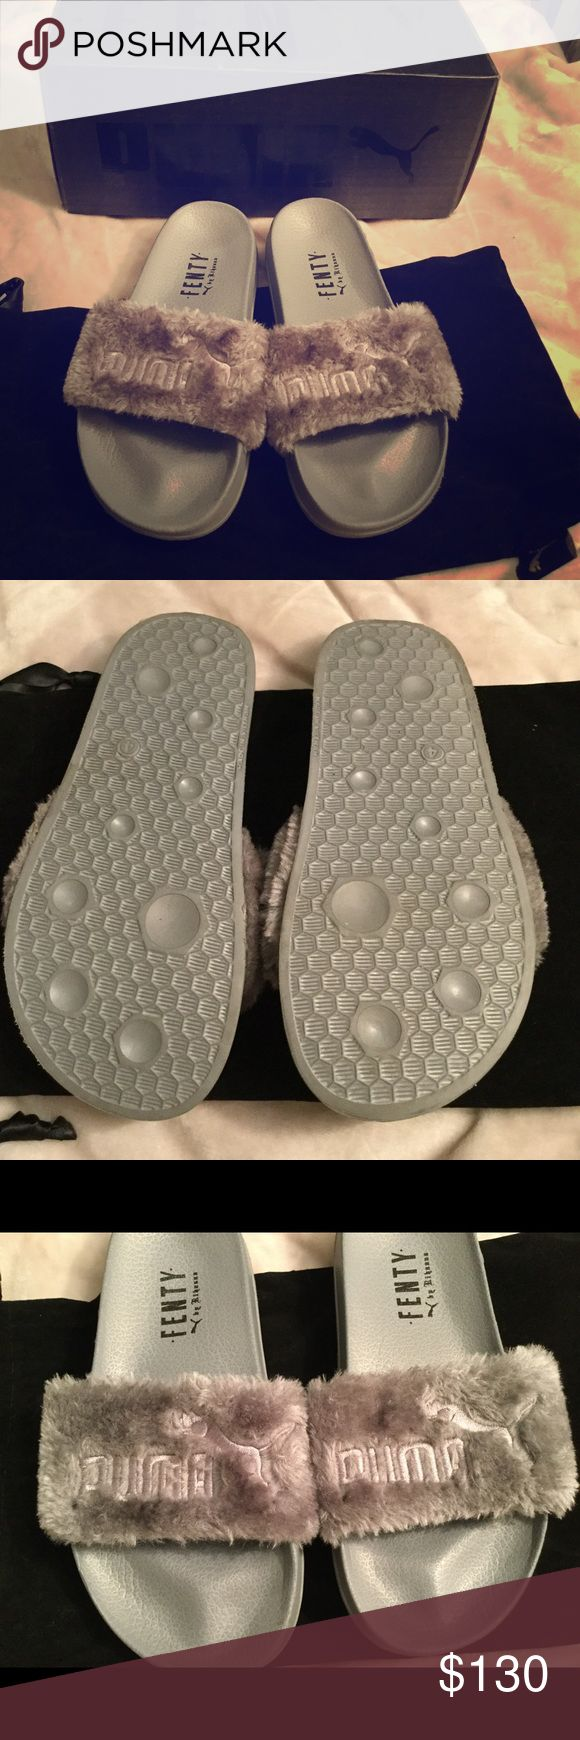 NWB fenty puma sliders Brand new Rihanna fenty puma sliders, in cool grey. These are super comfortable and stylish 😍 part of the Rihanna fenty collection. Sold out everywhere, I own two other pairs and love them. Size 6.5 but fits a 6.5/7/7.5 bought these off amazon the day they came out Puma Shoes Sandals